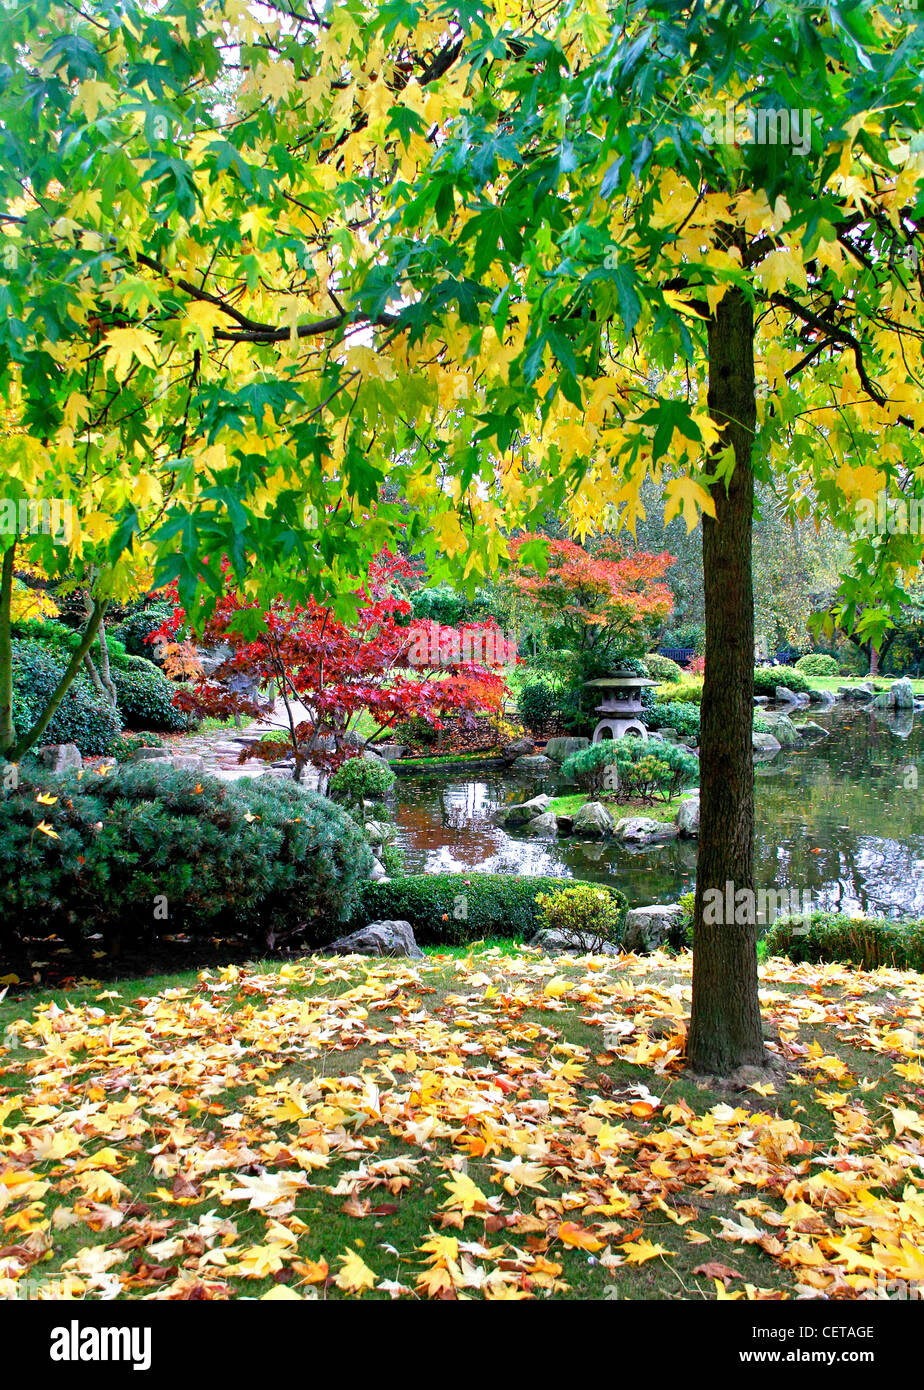 Autumnal colours on display in the Kyoto Garden in Holland Park. - Stock Image